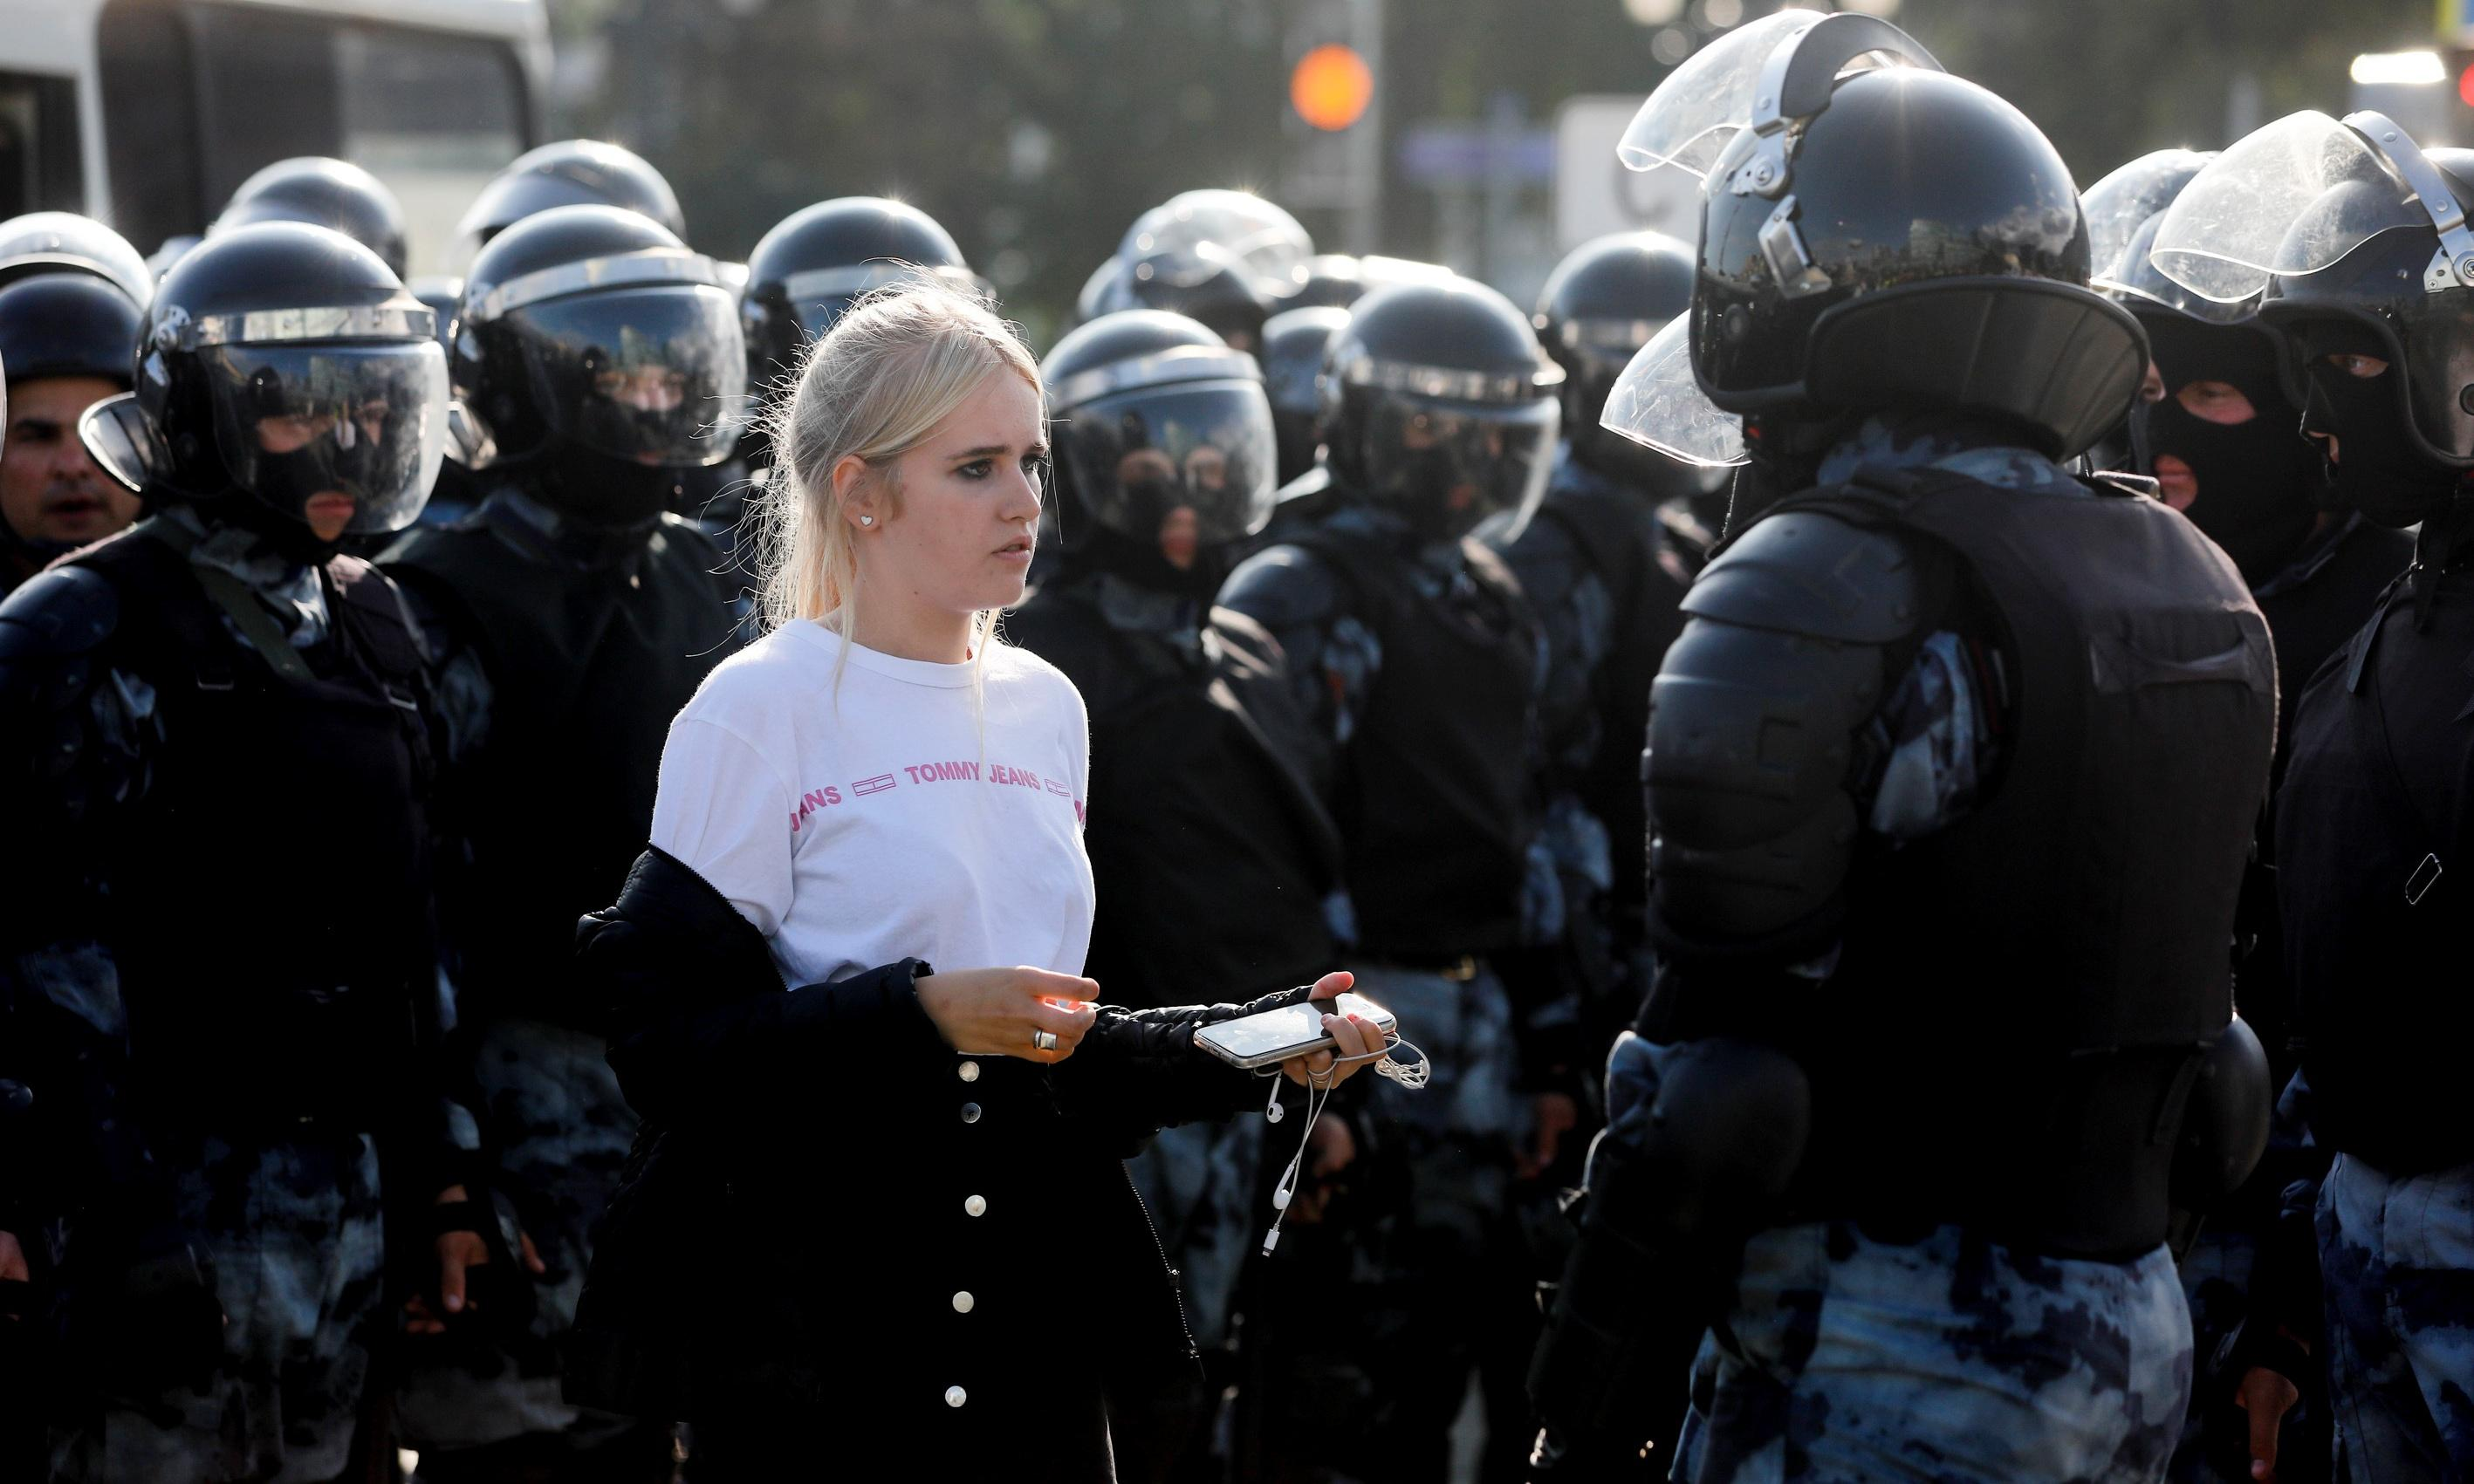 Moscow's peaceful protests enrage the Kremlin because its only tool is violence